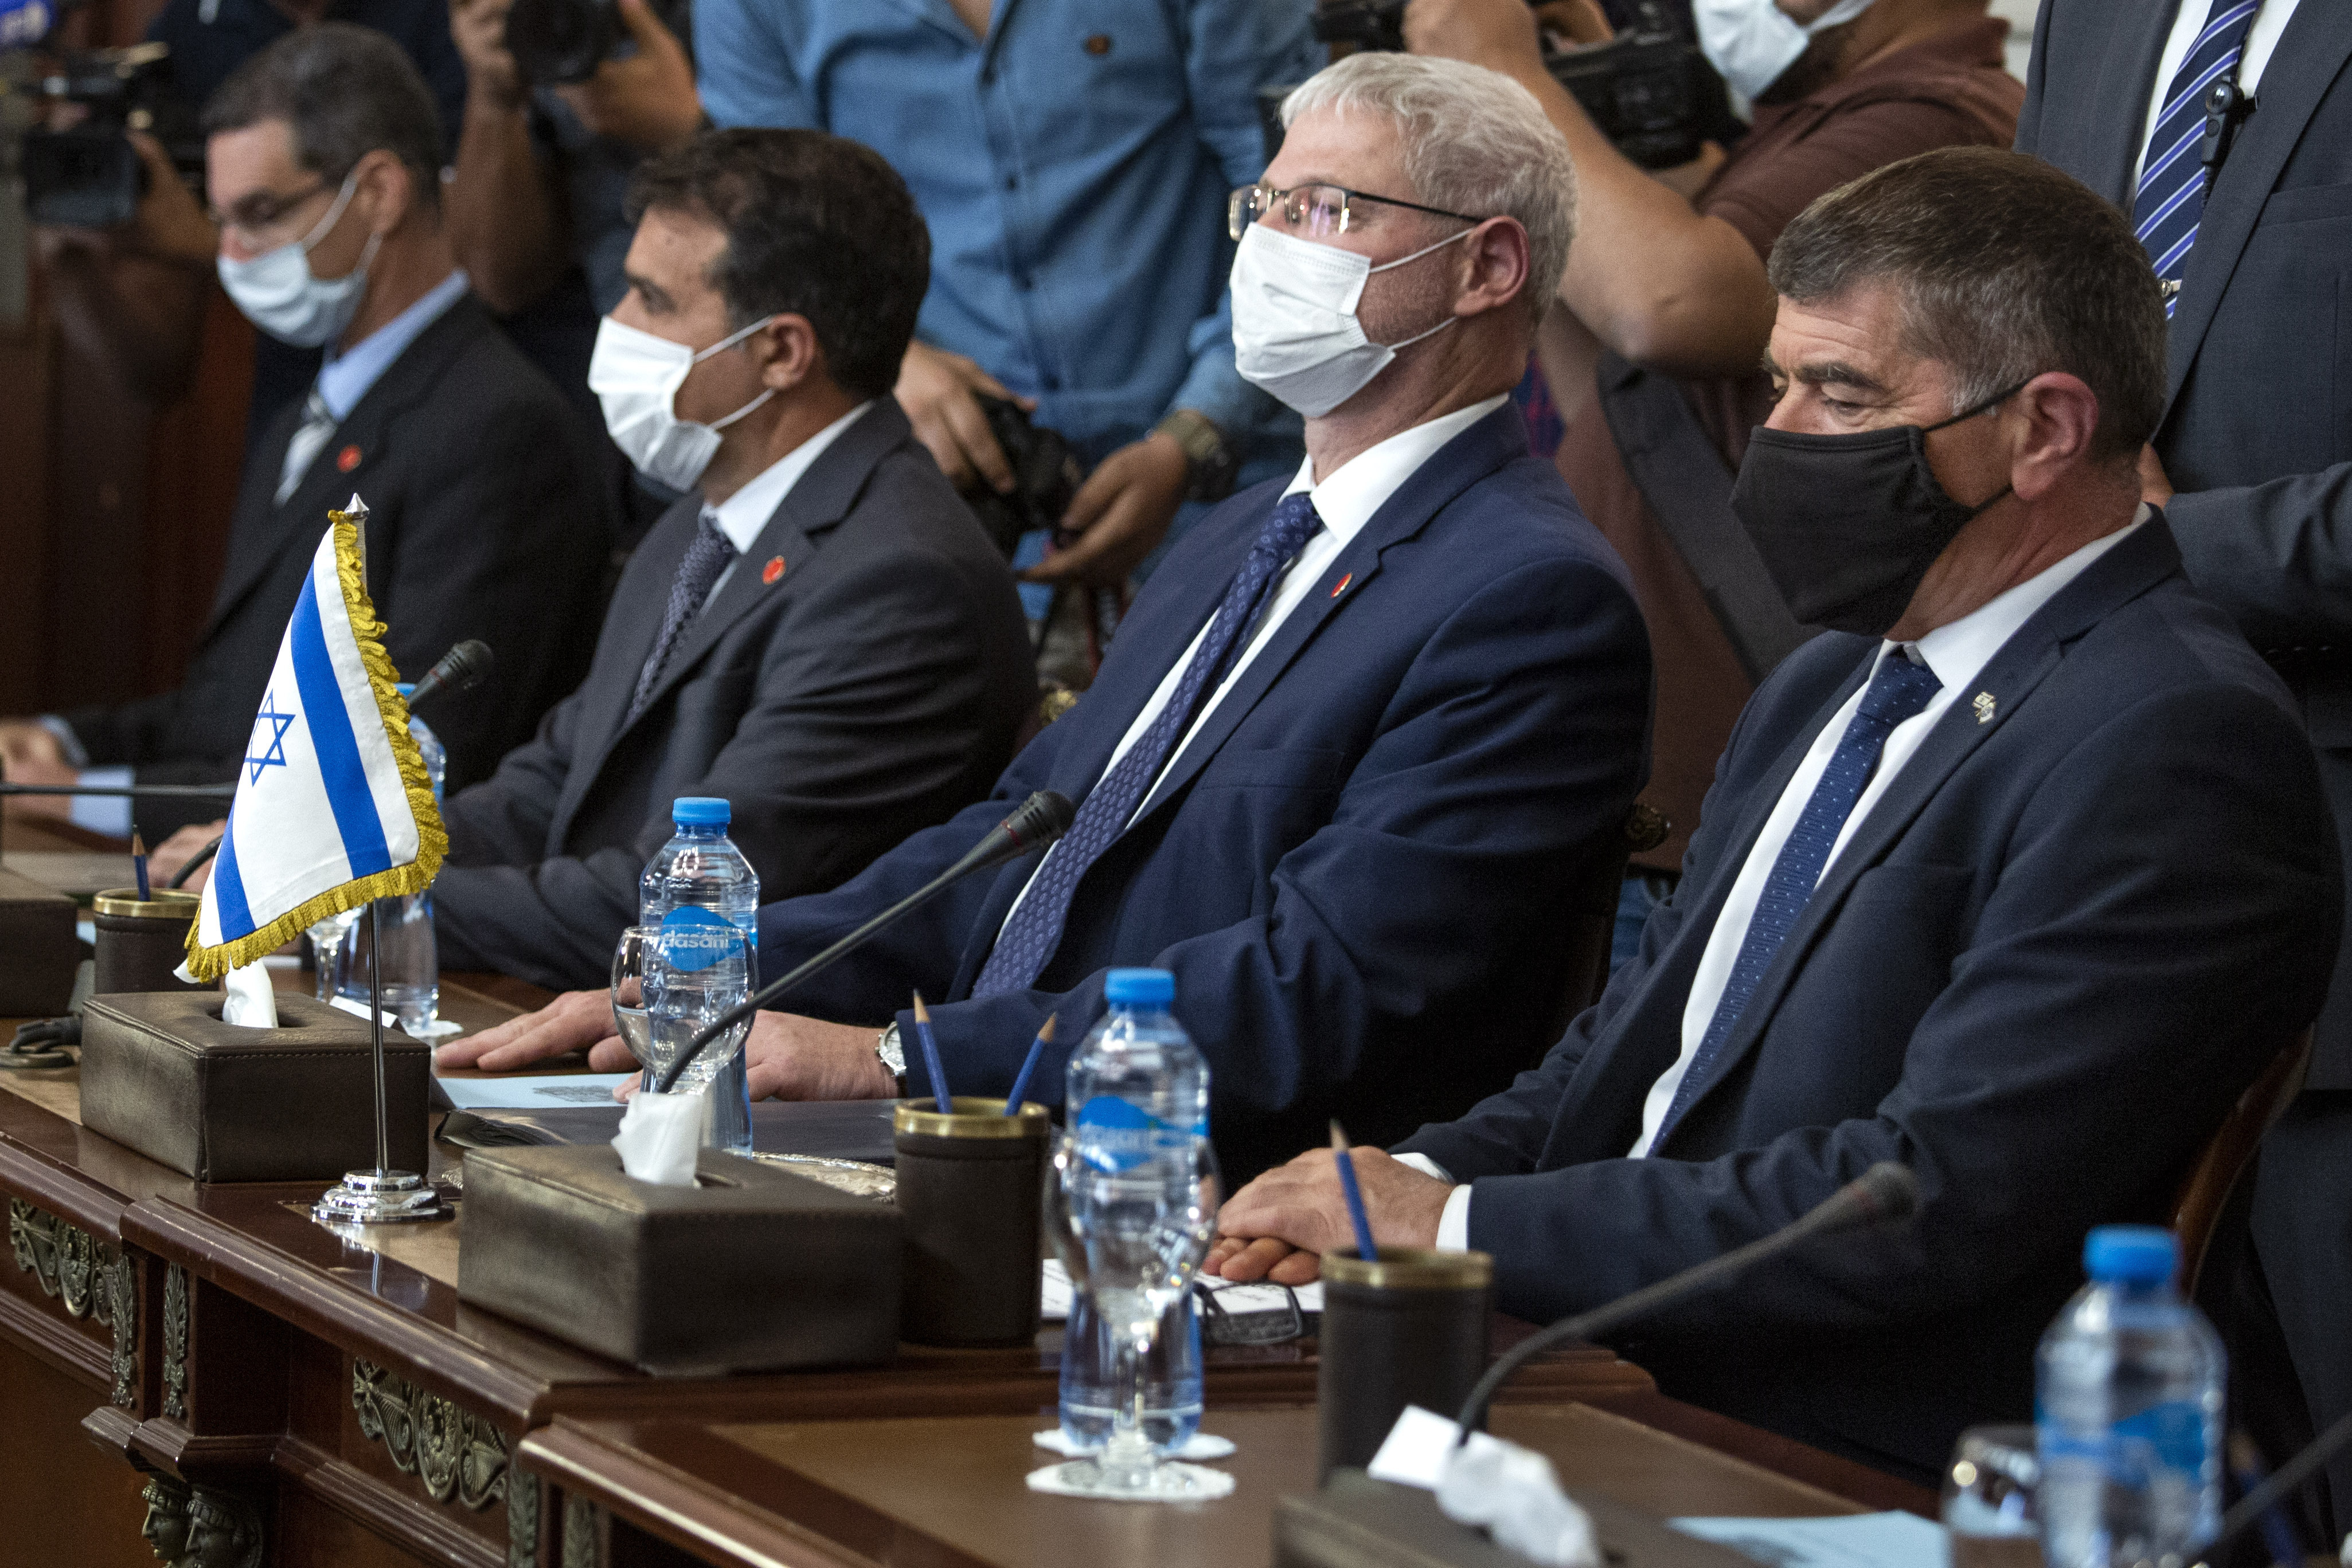 Israeli Foreign Minister Gabi Ashkenazi, right, meets with Egyptian Foreign Minister Sameh Shoukry (not shown), during high-level talks to shore up a fragile truce between Israel and the Hamas militant group at the Tahrir Palace in Cairo, Egypt, on May 30, 2021.